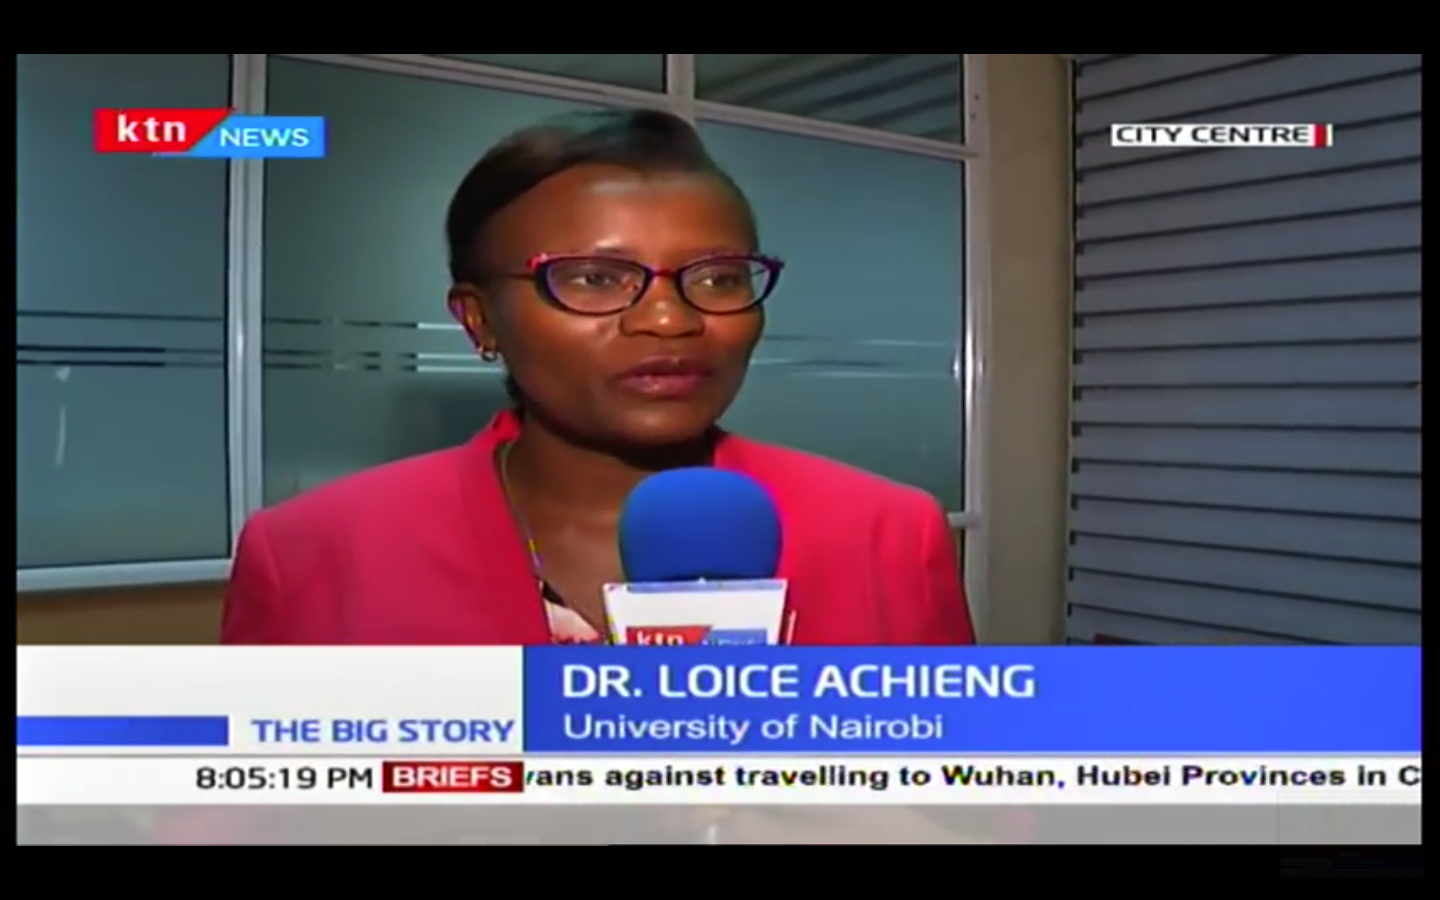 DR LOICE INFECTIOUS DISEASE EXPERT SPEAKS TO KTN ABOUT ...